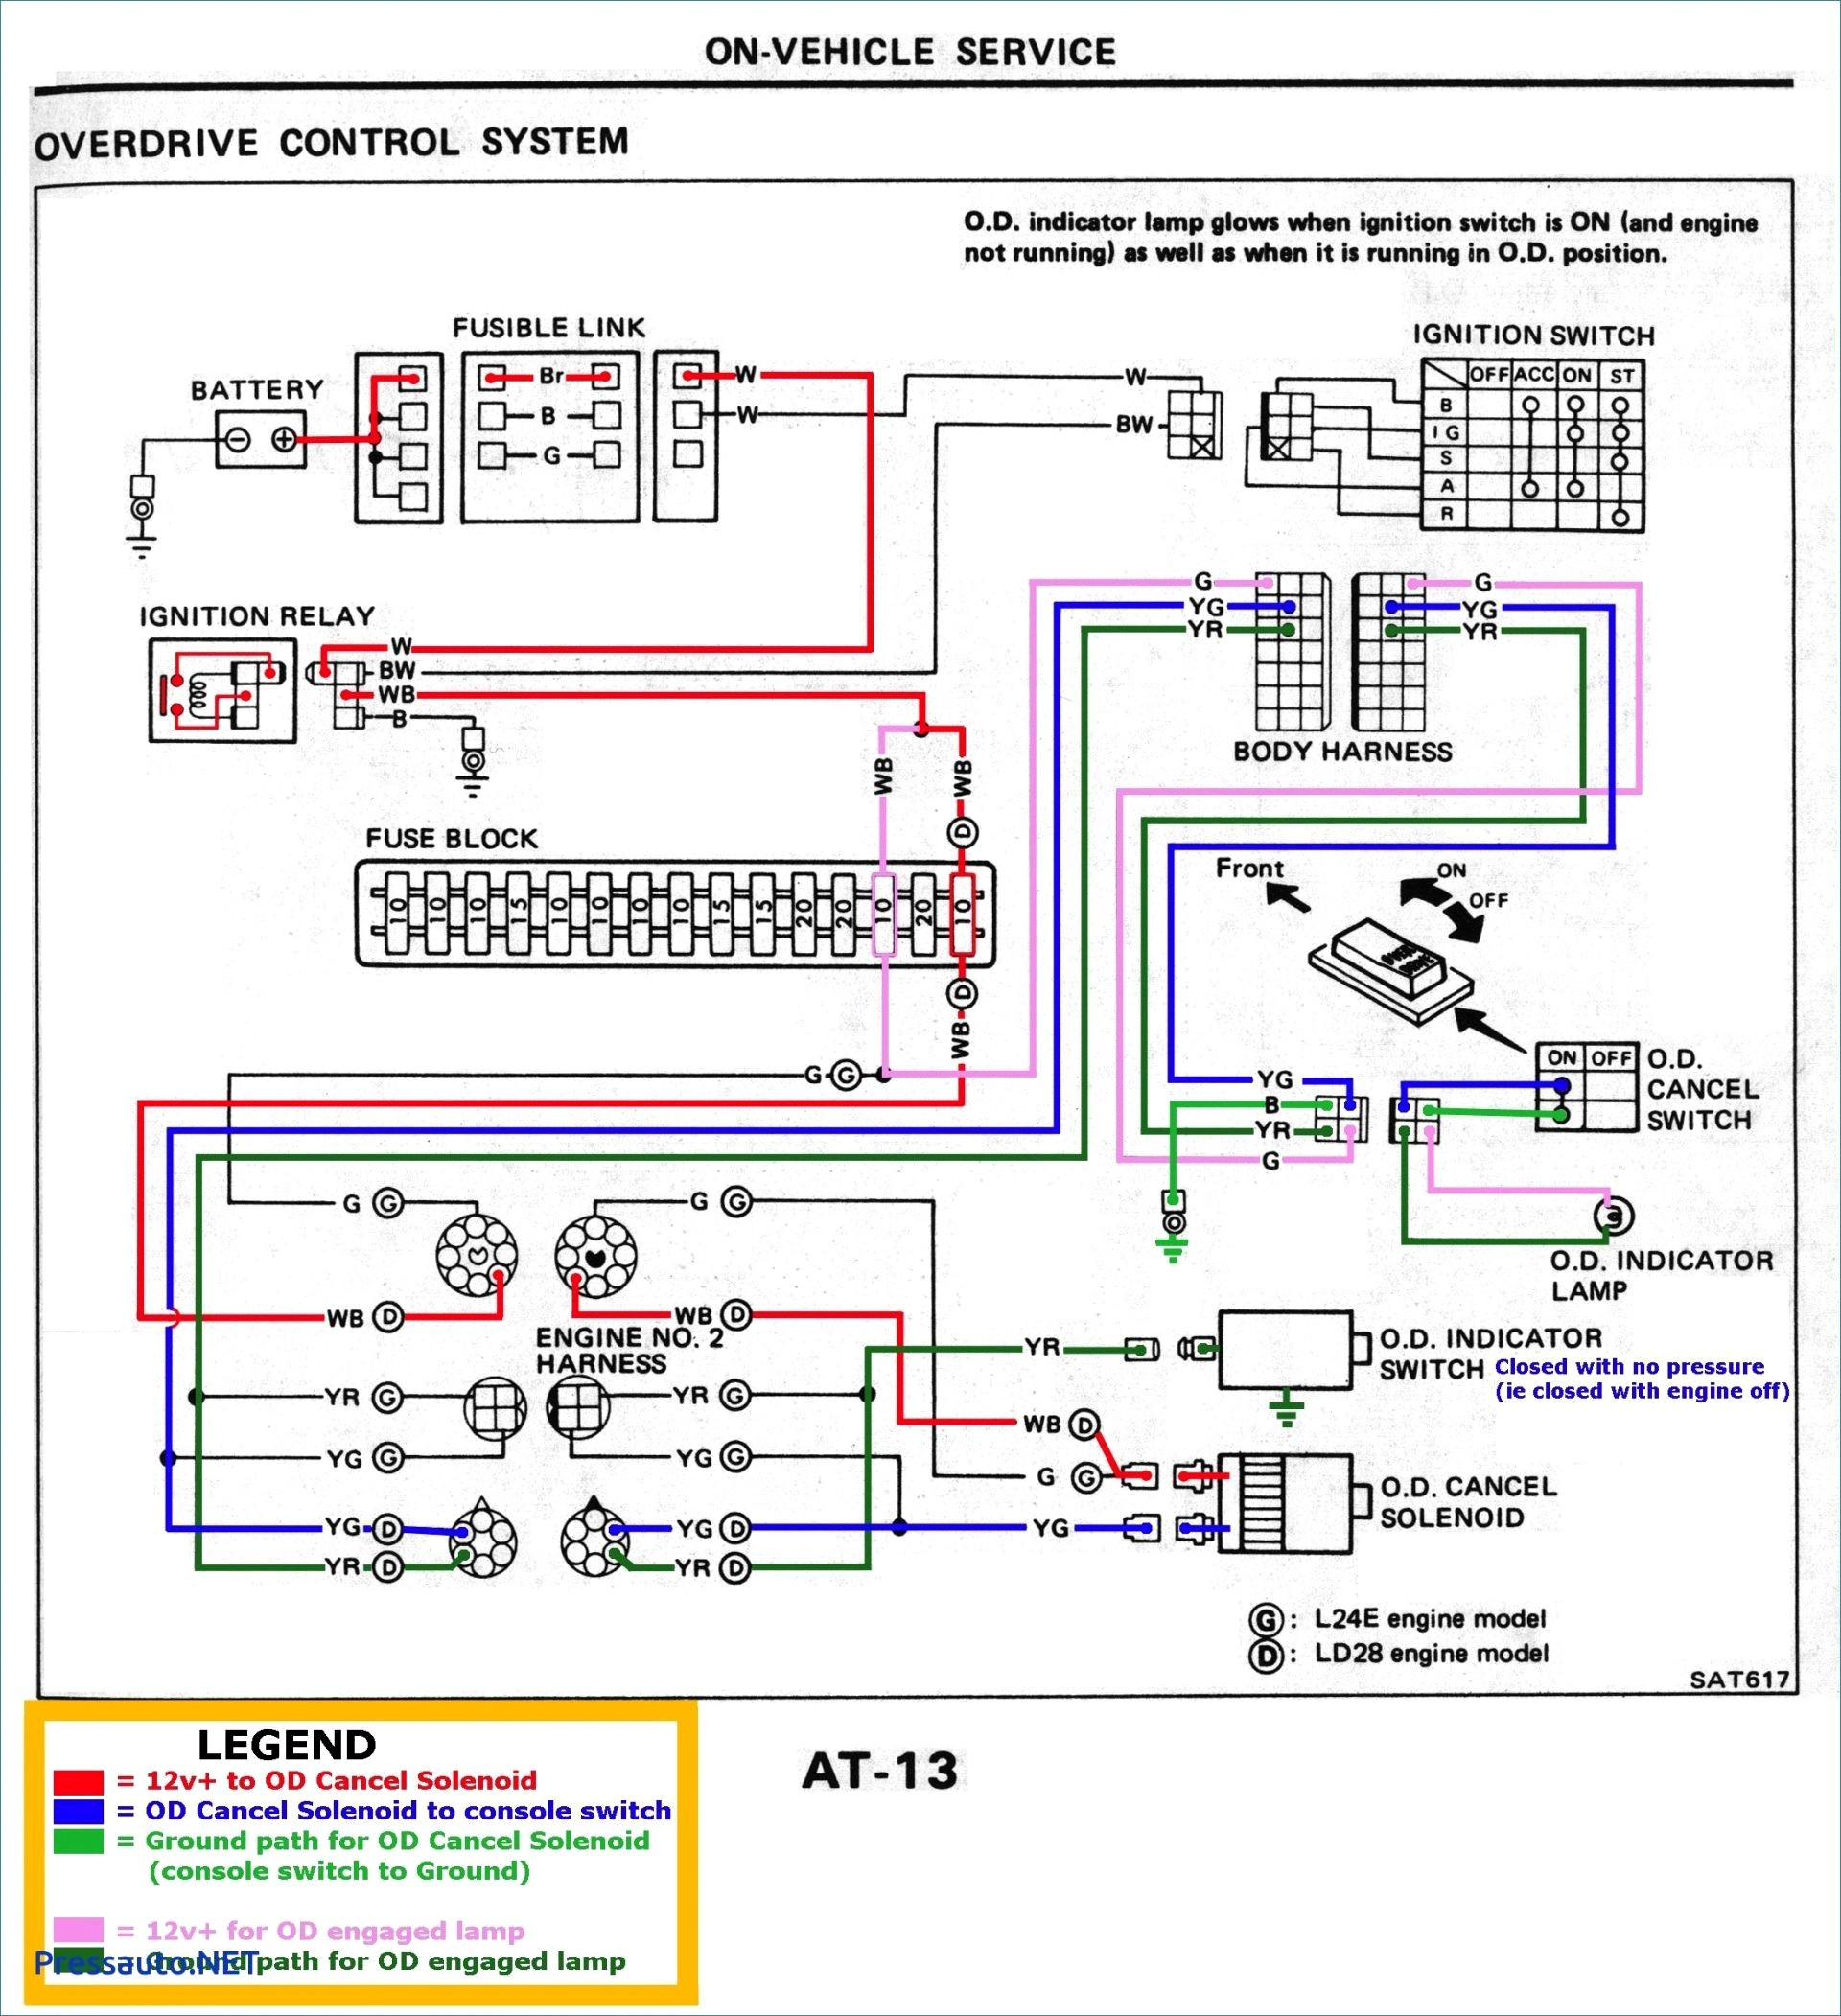 1996 Chevy S10 Wiring Diagram 89 Chevy Wiring Harness Data Wiring Diagrams • Of 1996 Chevy S10 Wiring Diagram